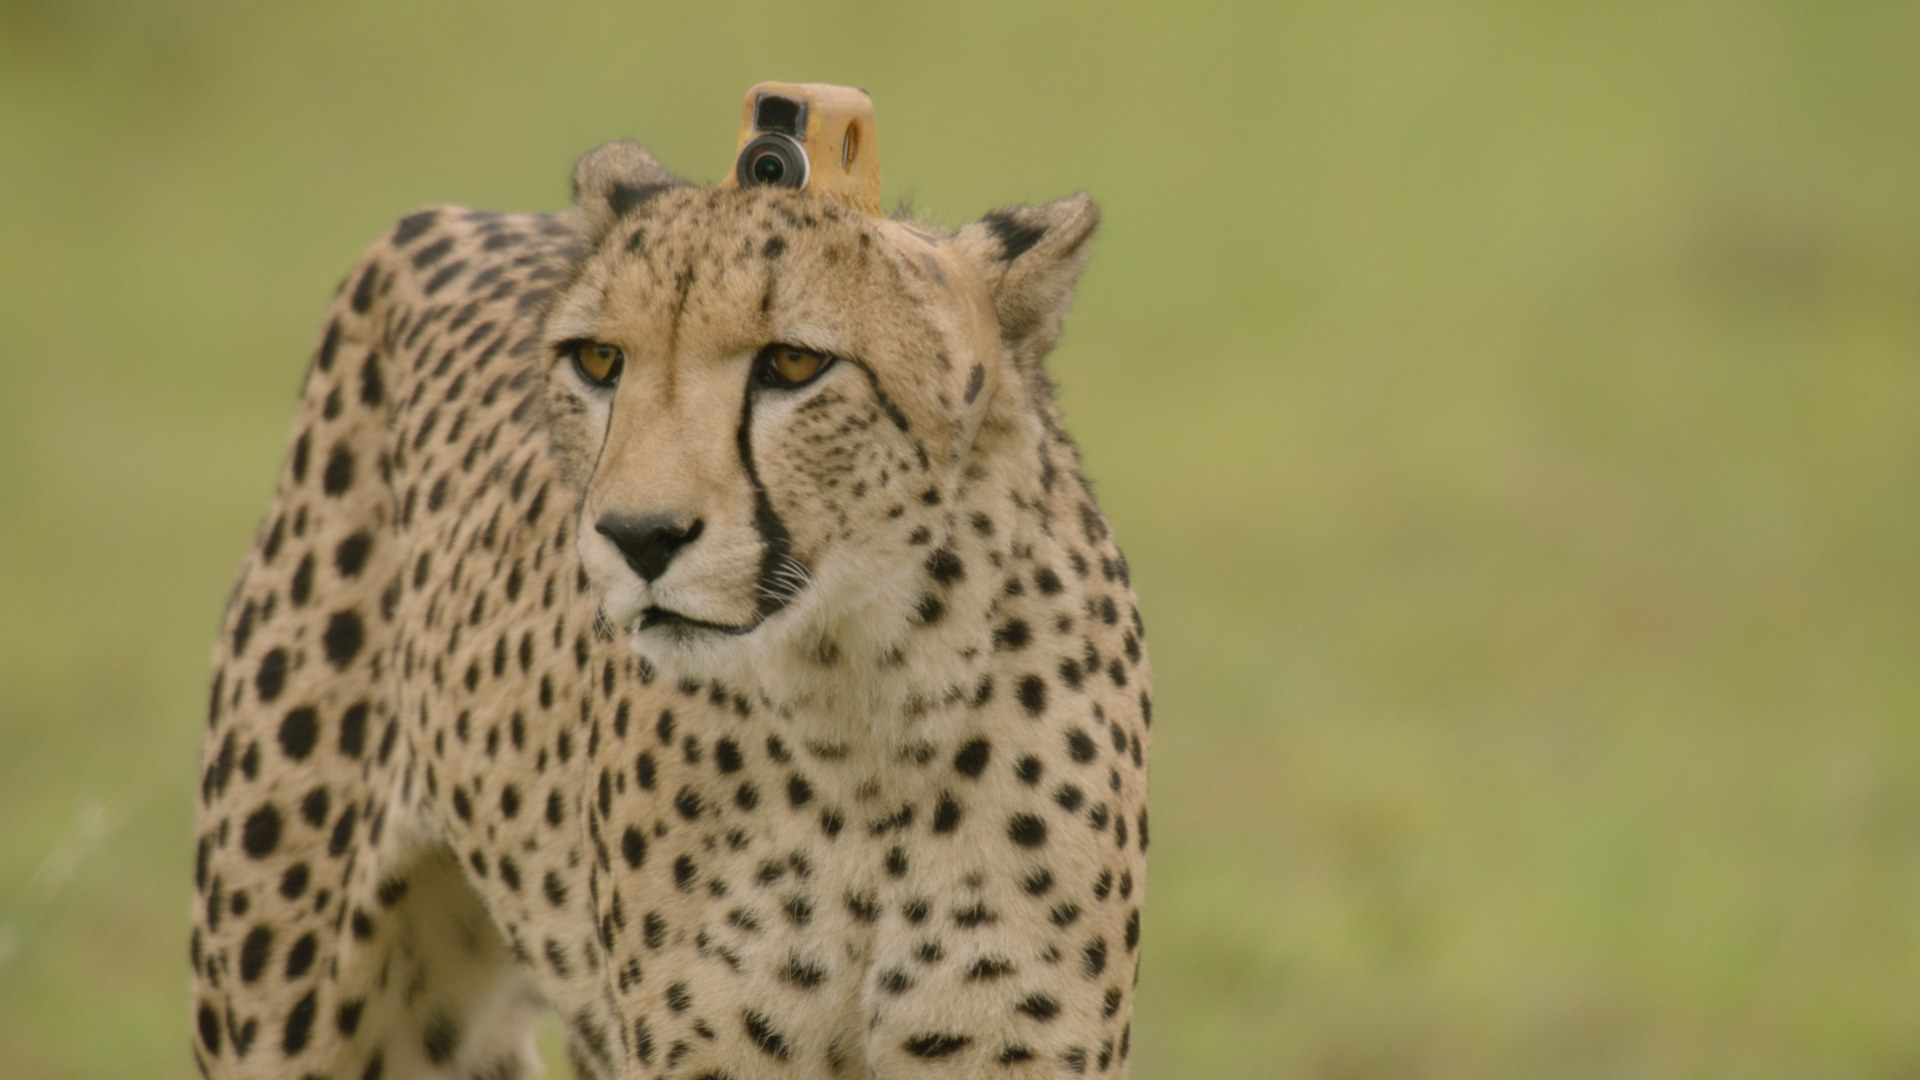 Get a bird's-eye view of life among wild beasts in 'Animals with Cameras'